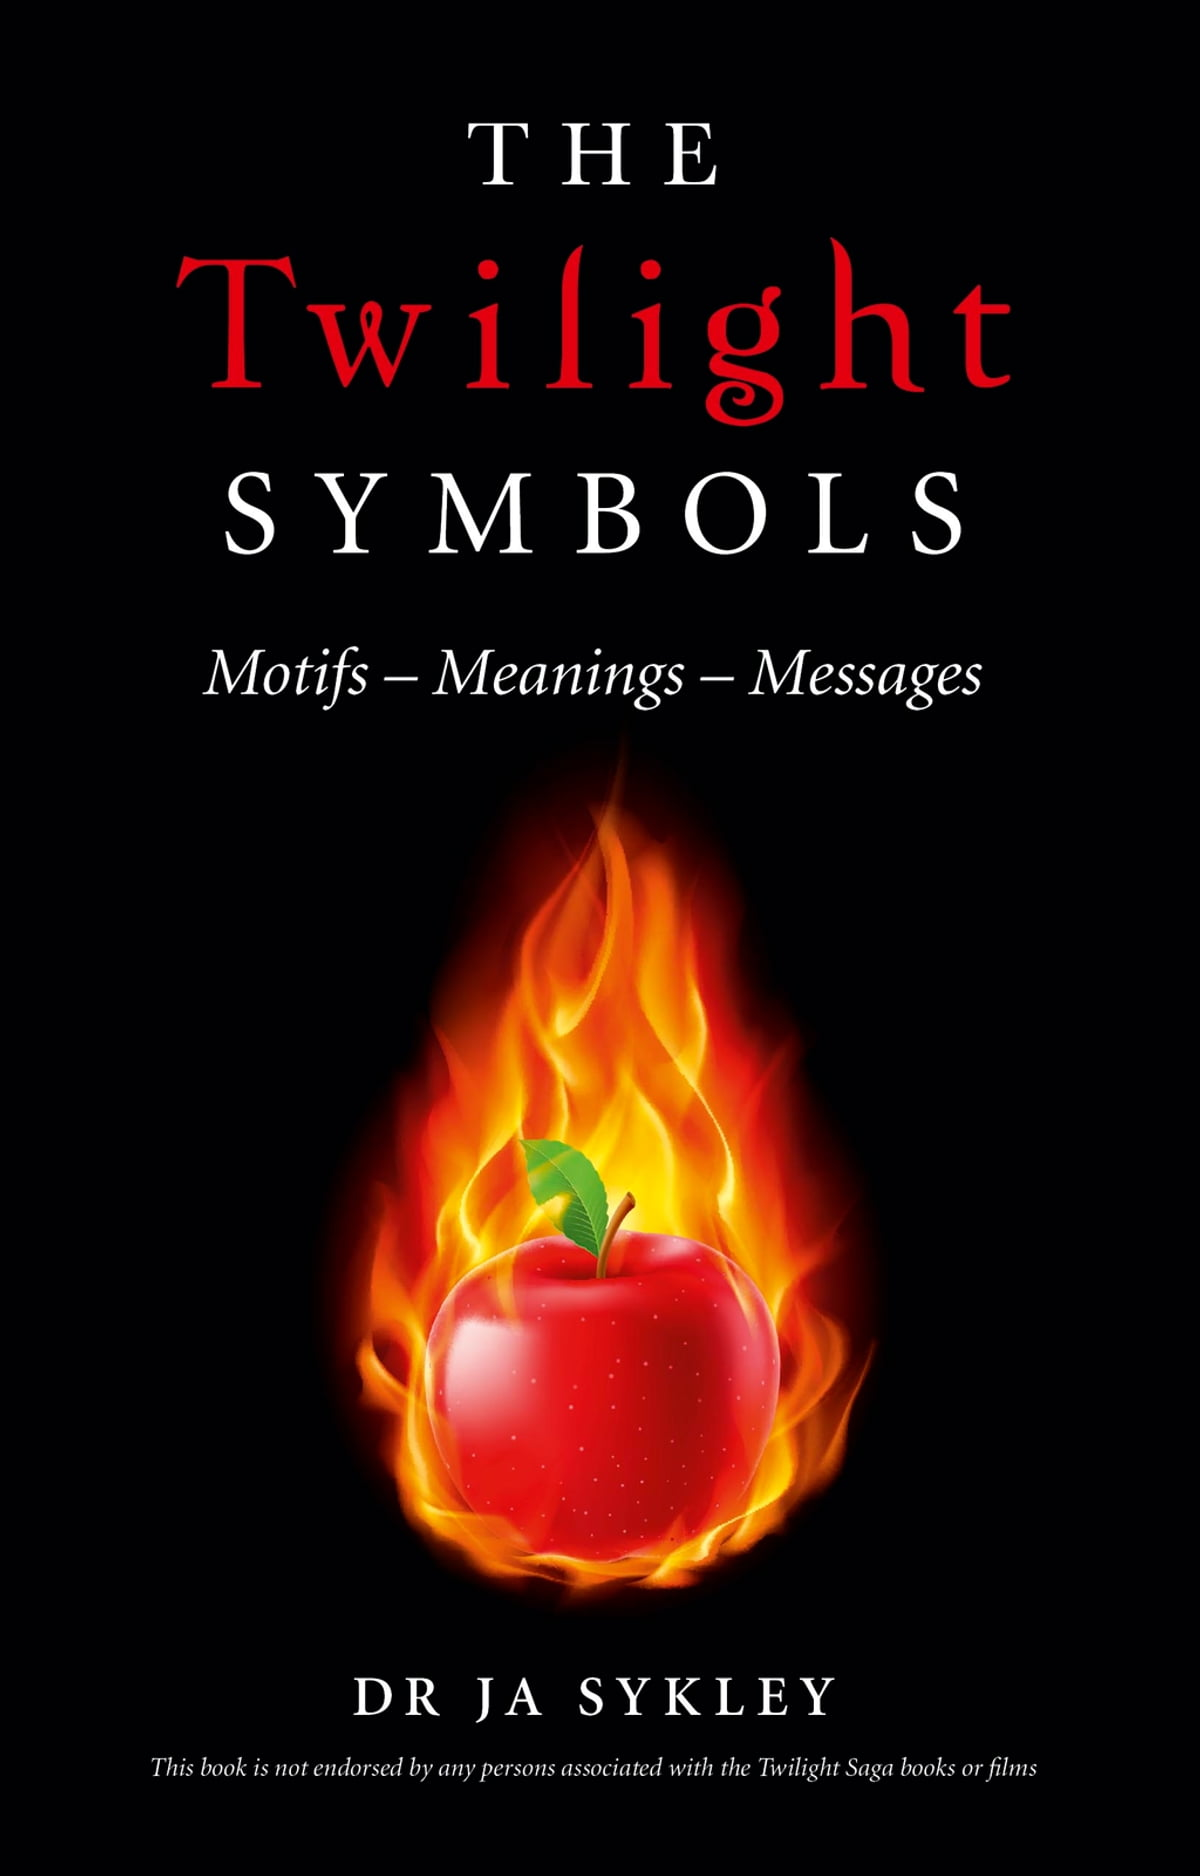 The Twilight Symbols Ebook By Julie Anne Sykley 9781780994369